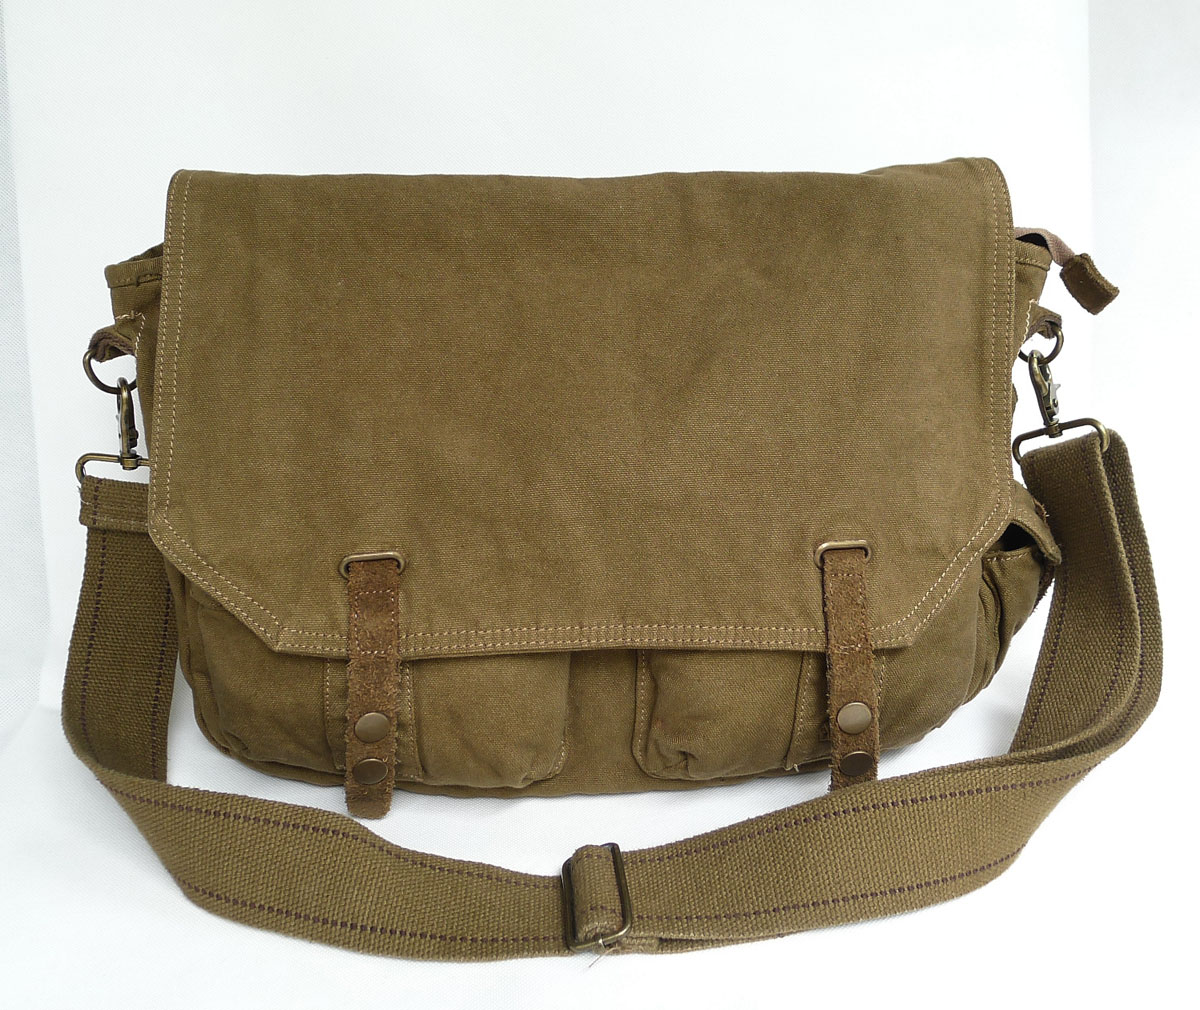 Virginland brand reporter bag military male canvas school